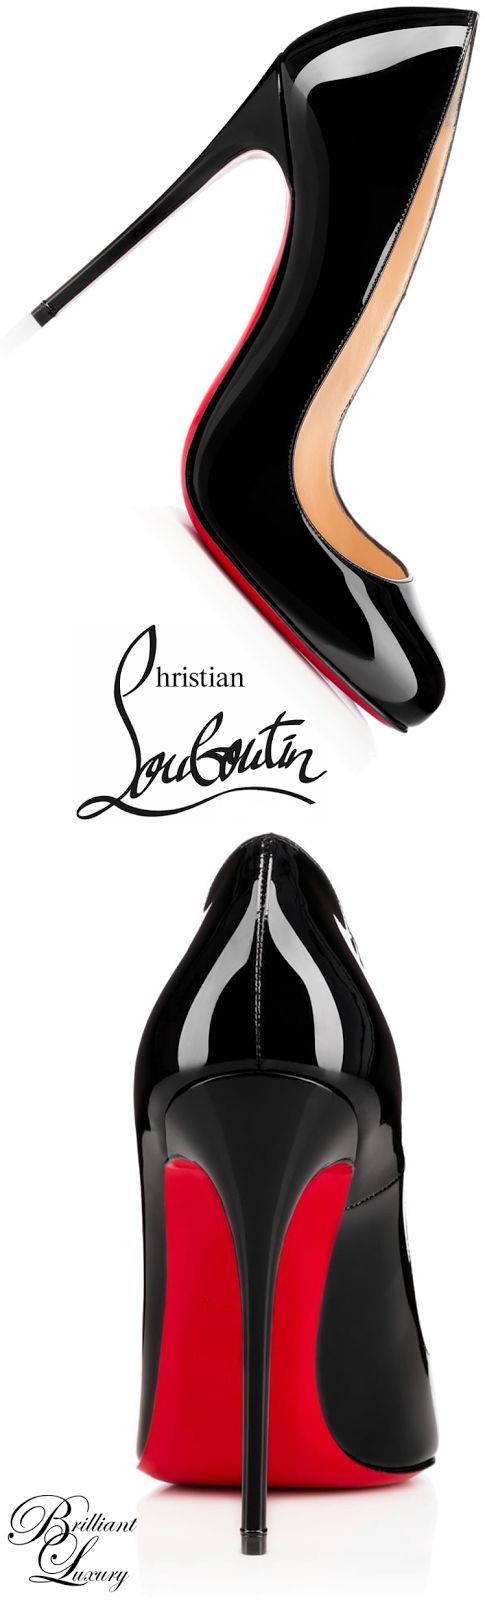 Brilliant Luxury * Christian Louboutin 'Dorissima' 2015 Más